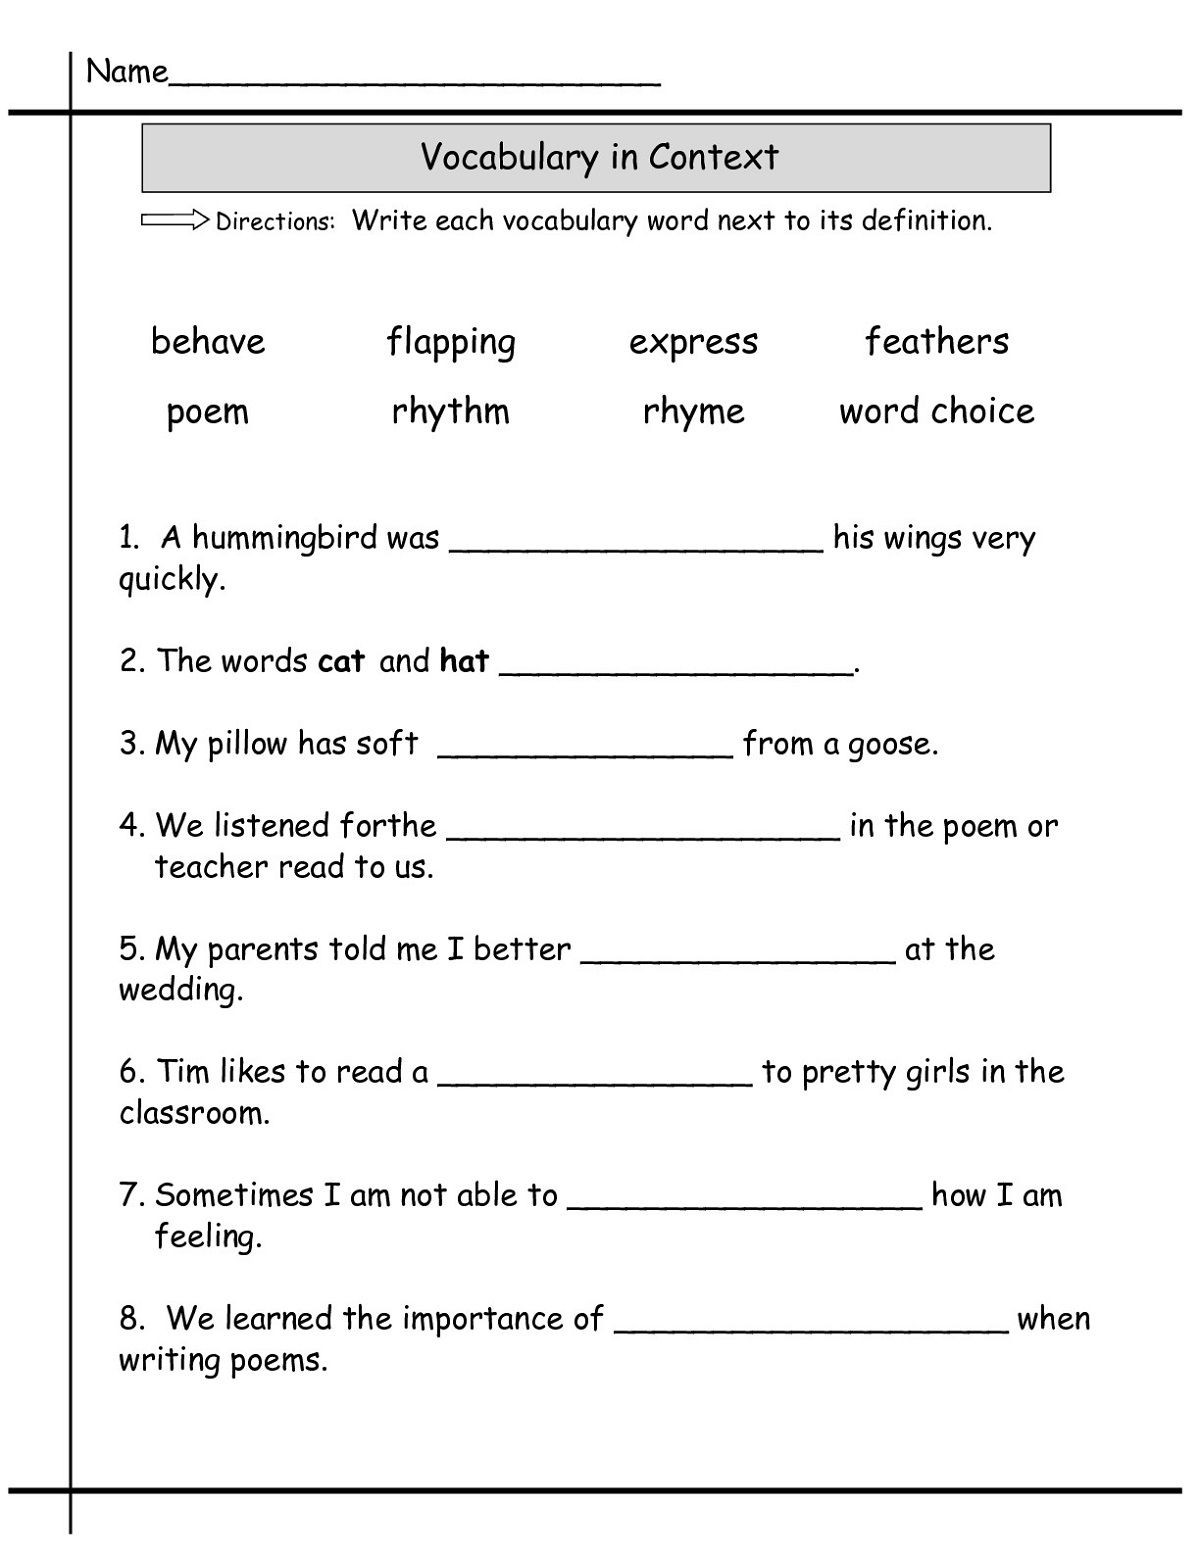 8th Grade Vocabulary Worksheets Language Worksheets English Grade 1 4